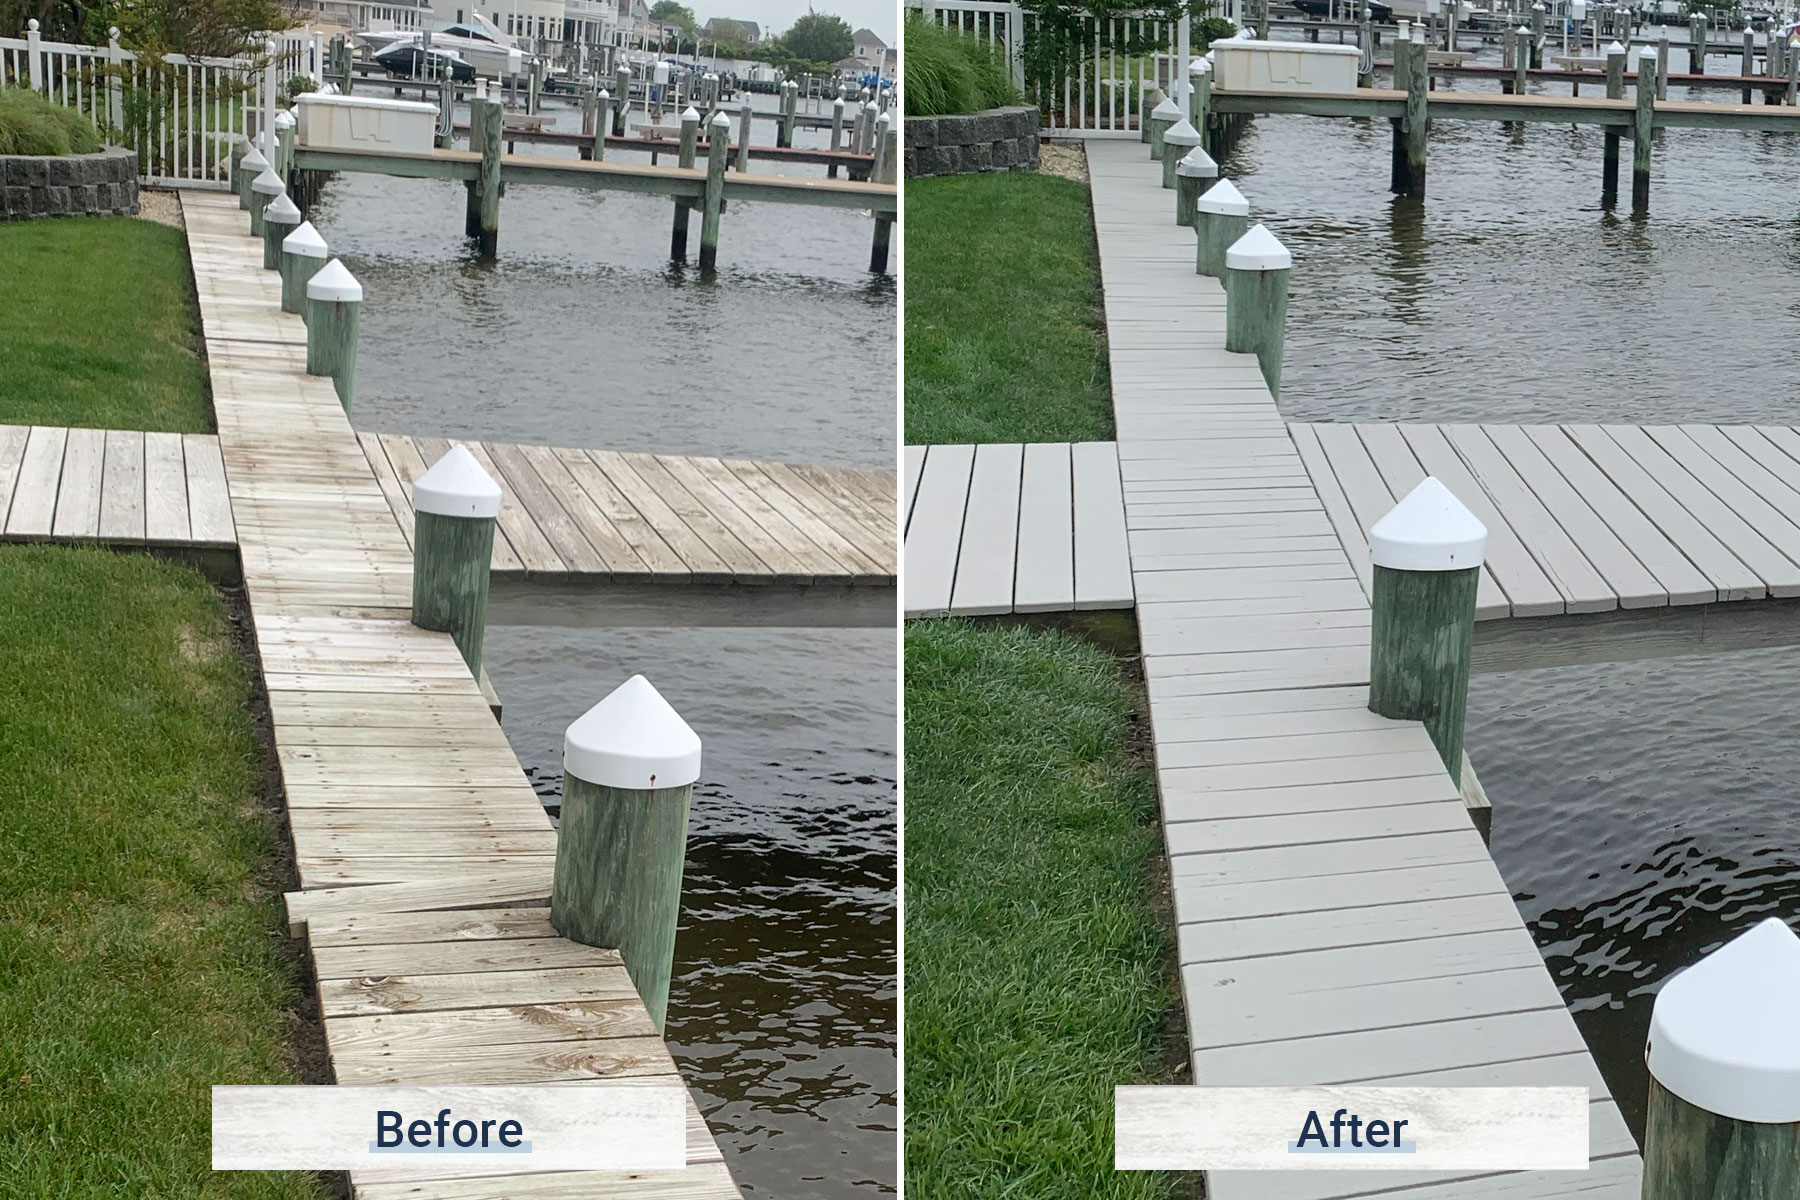 dock 7 before and after